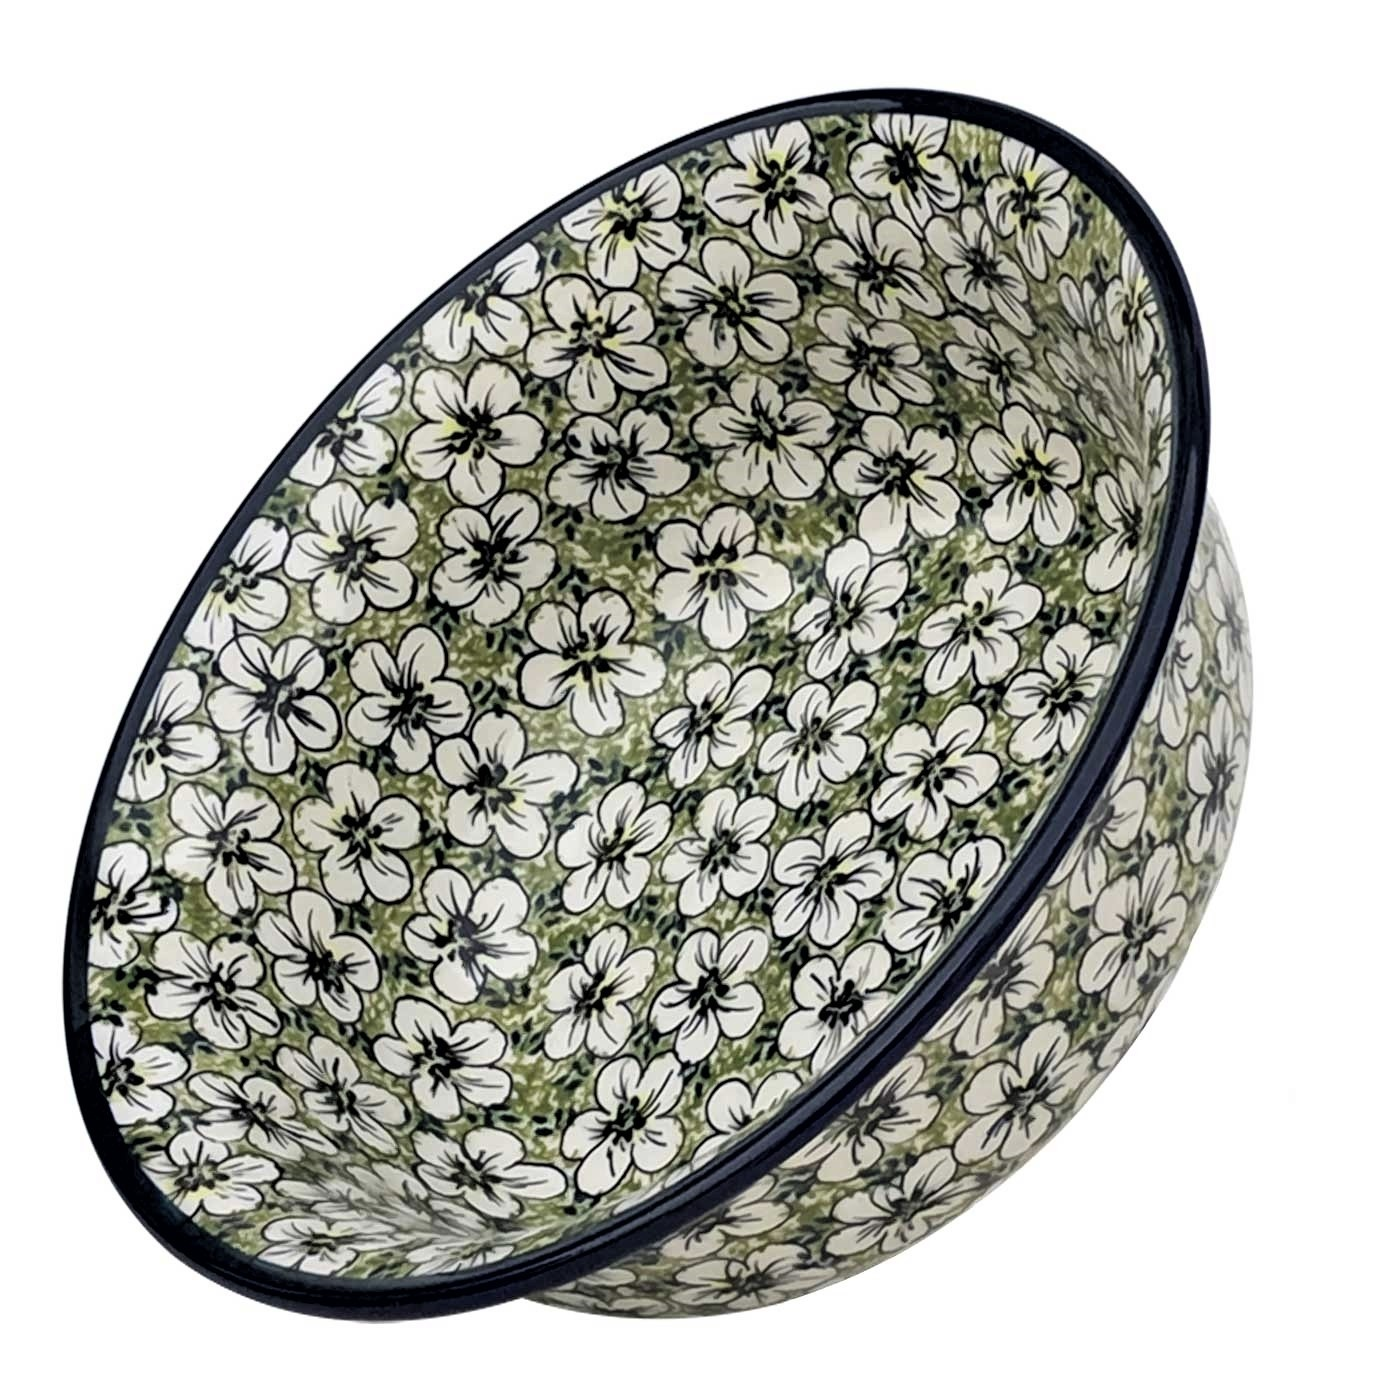 Pottery Avenue 10-inch Flared Top All Purpose Baking-Serving Bowll -1605-328AR Bacopa